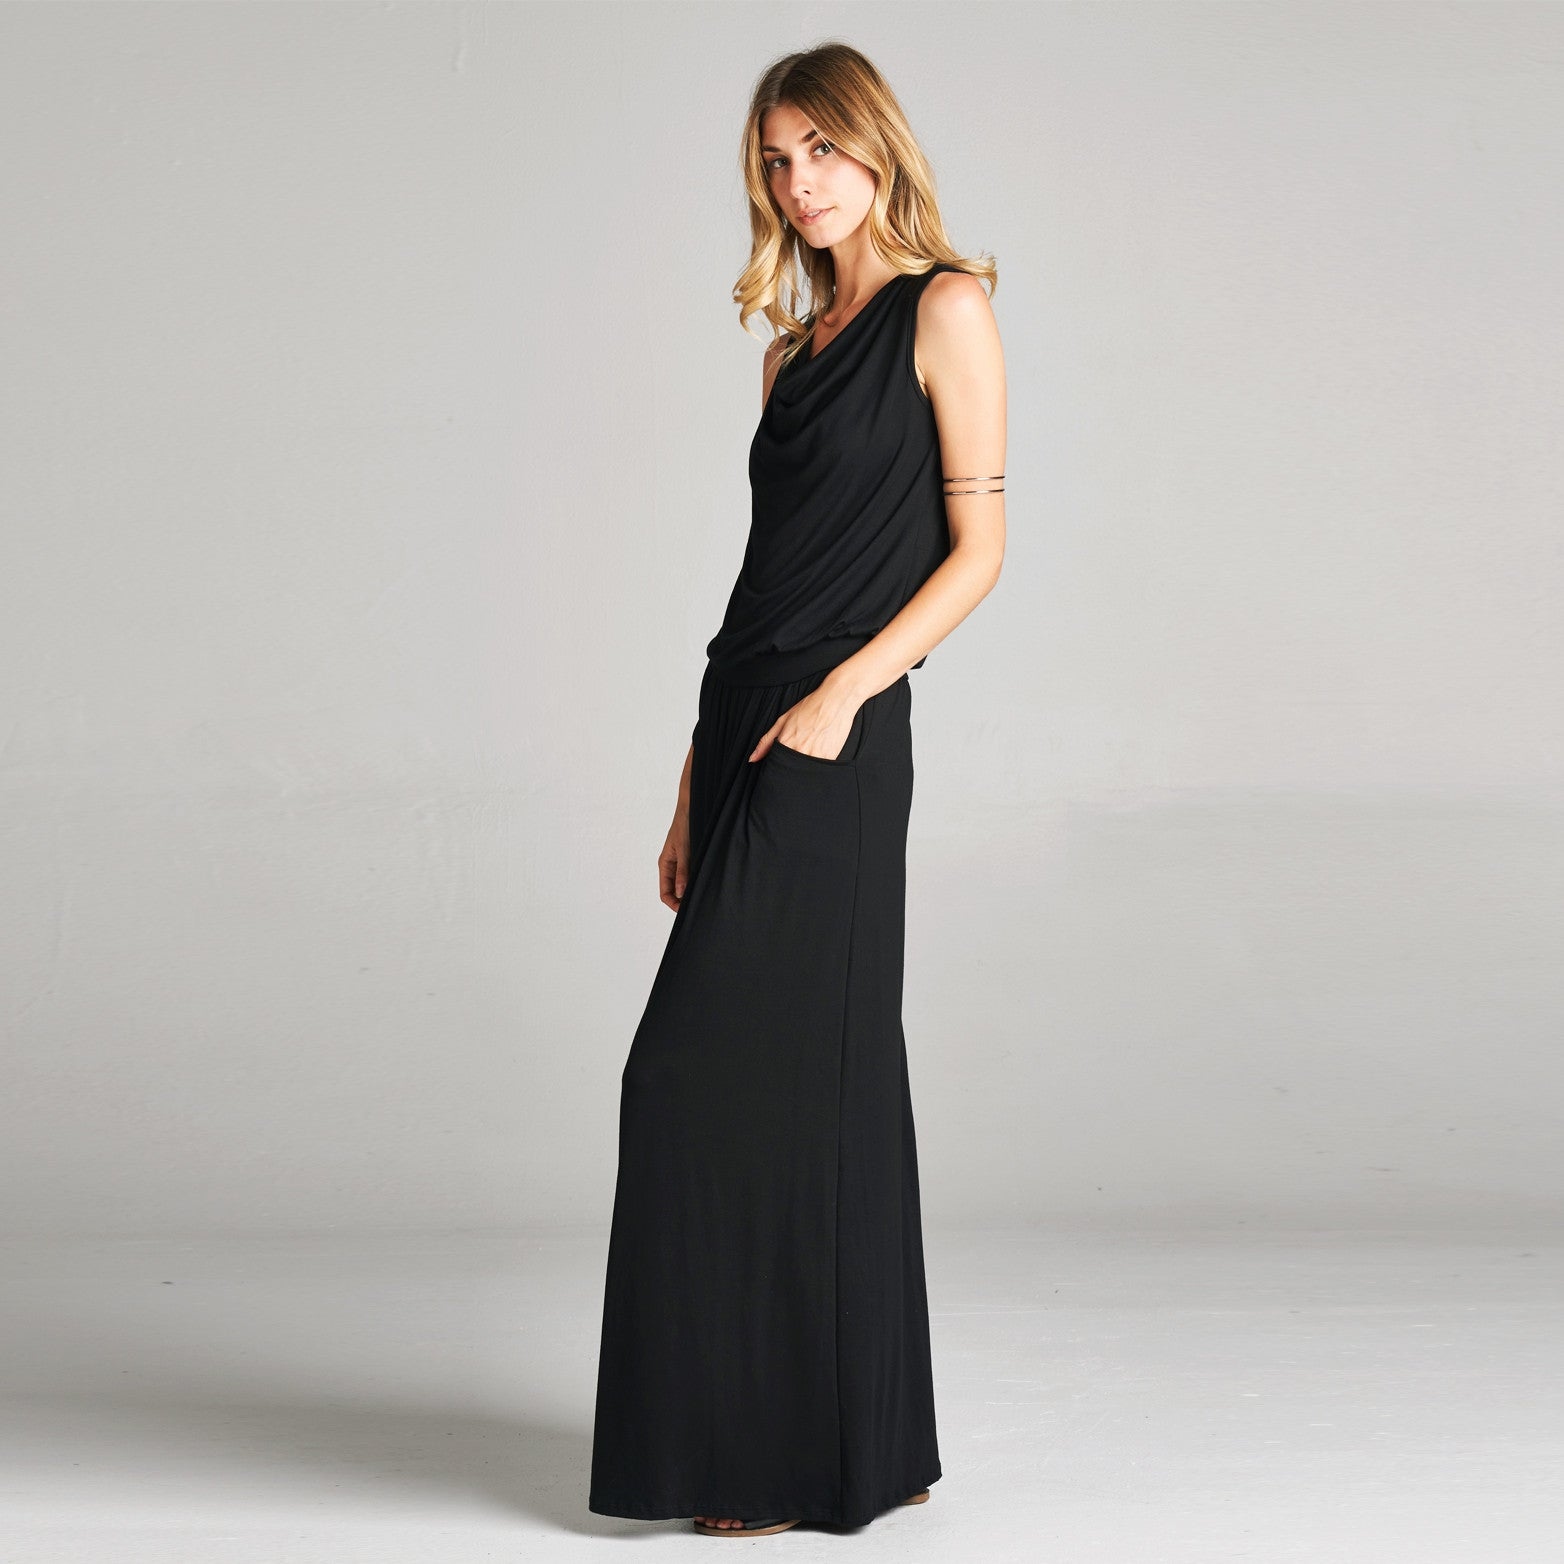 Cowl Neck Maxi Dress with Pockets - Love, Kuza